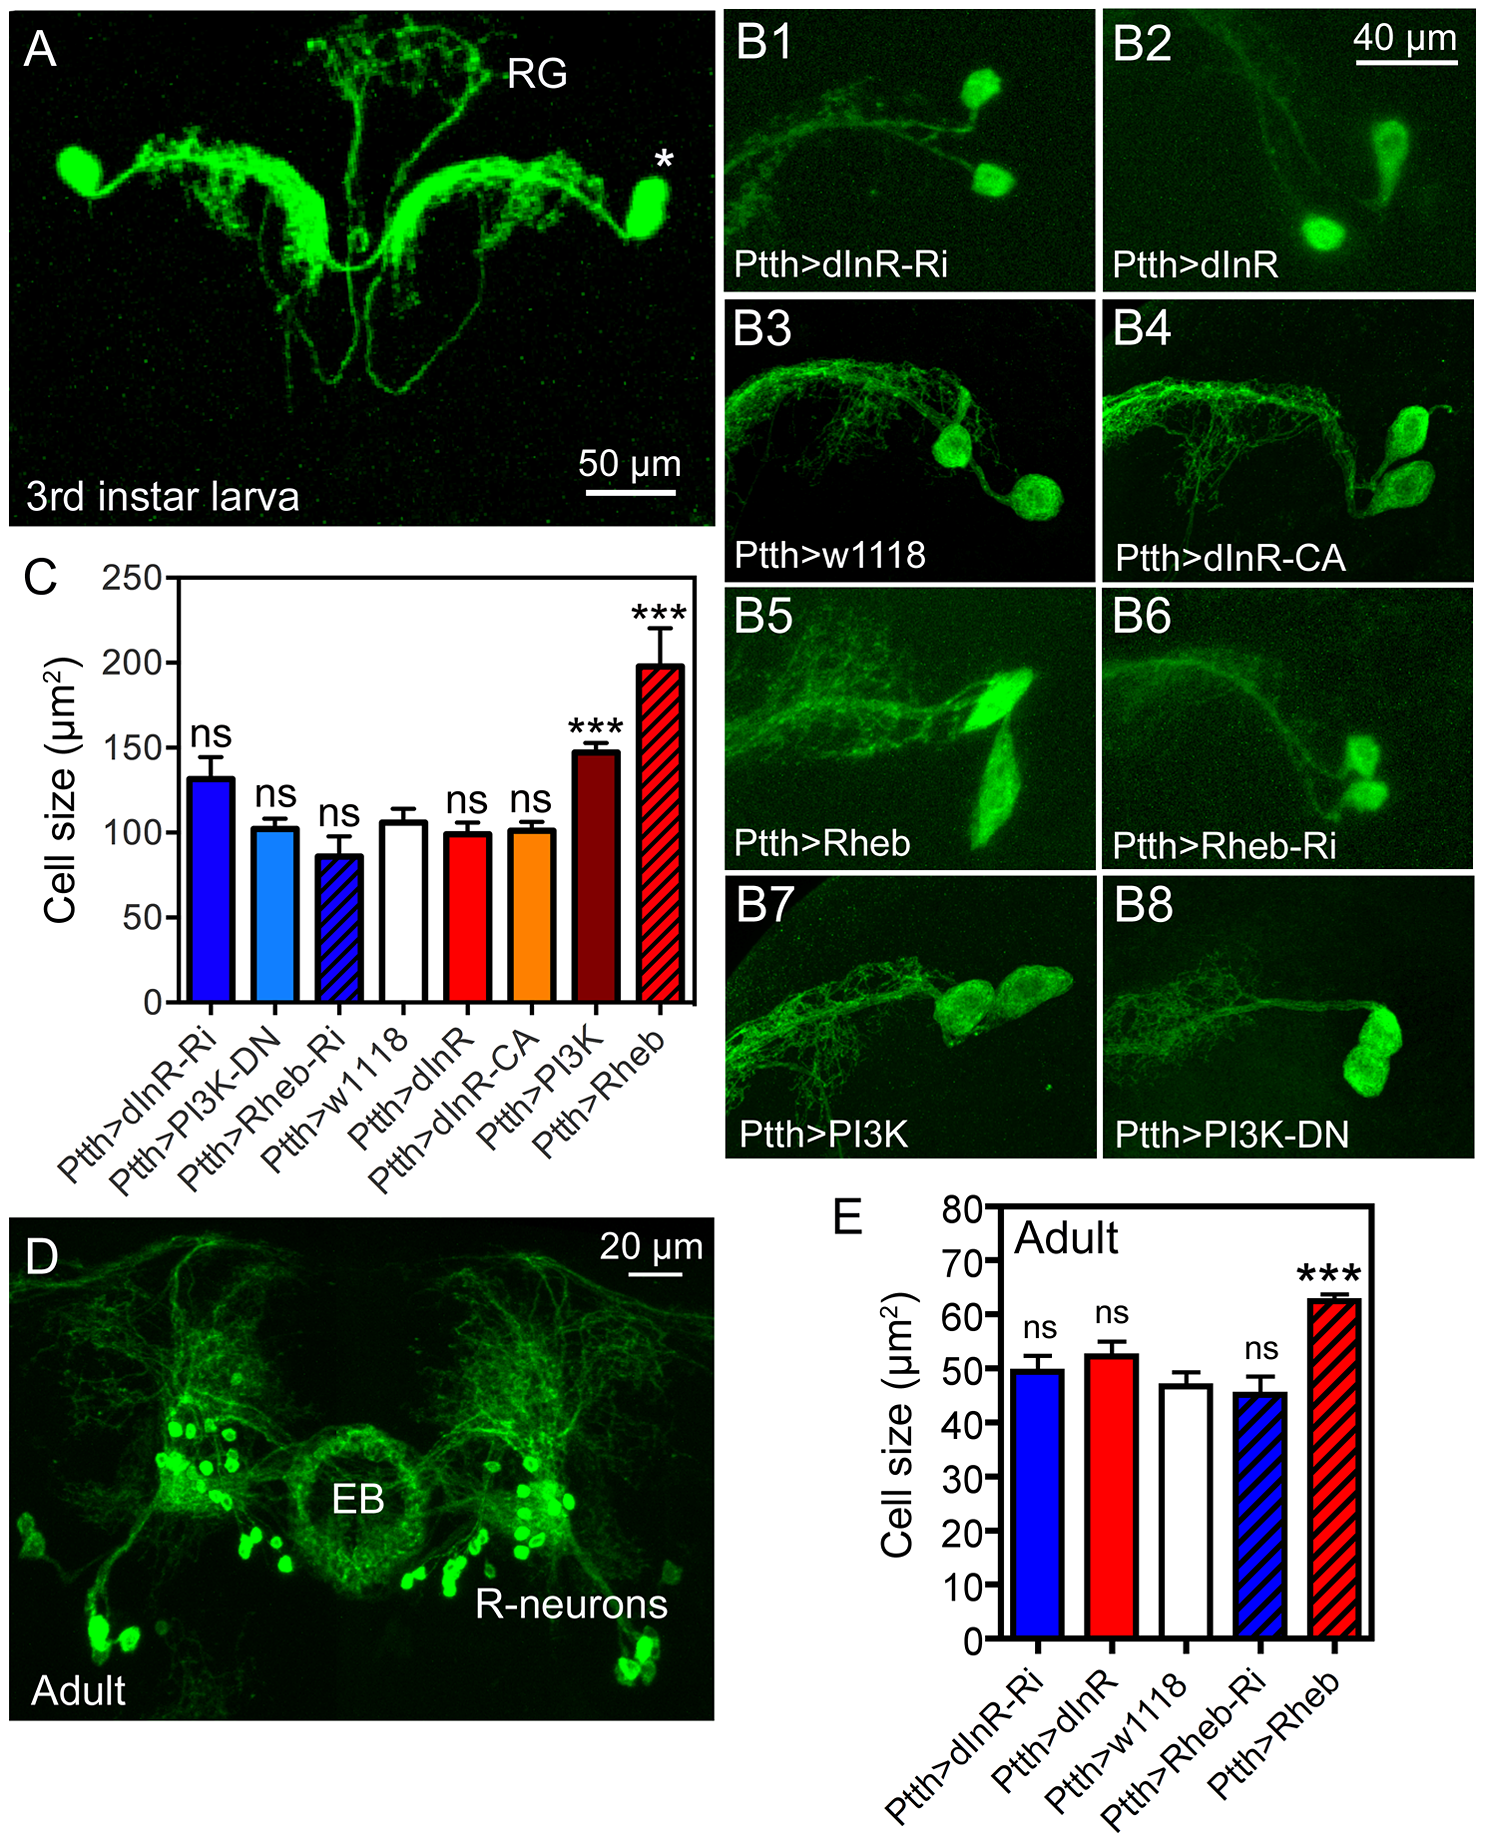 Dimm-negative neurosecretory cells are not affected by dInR manipulations, but by Rheb and PI3K overexpression.